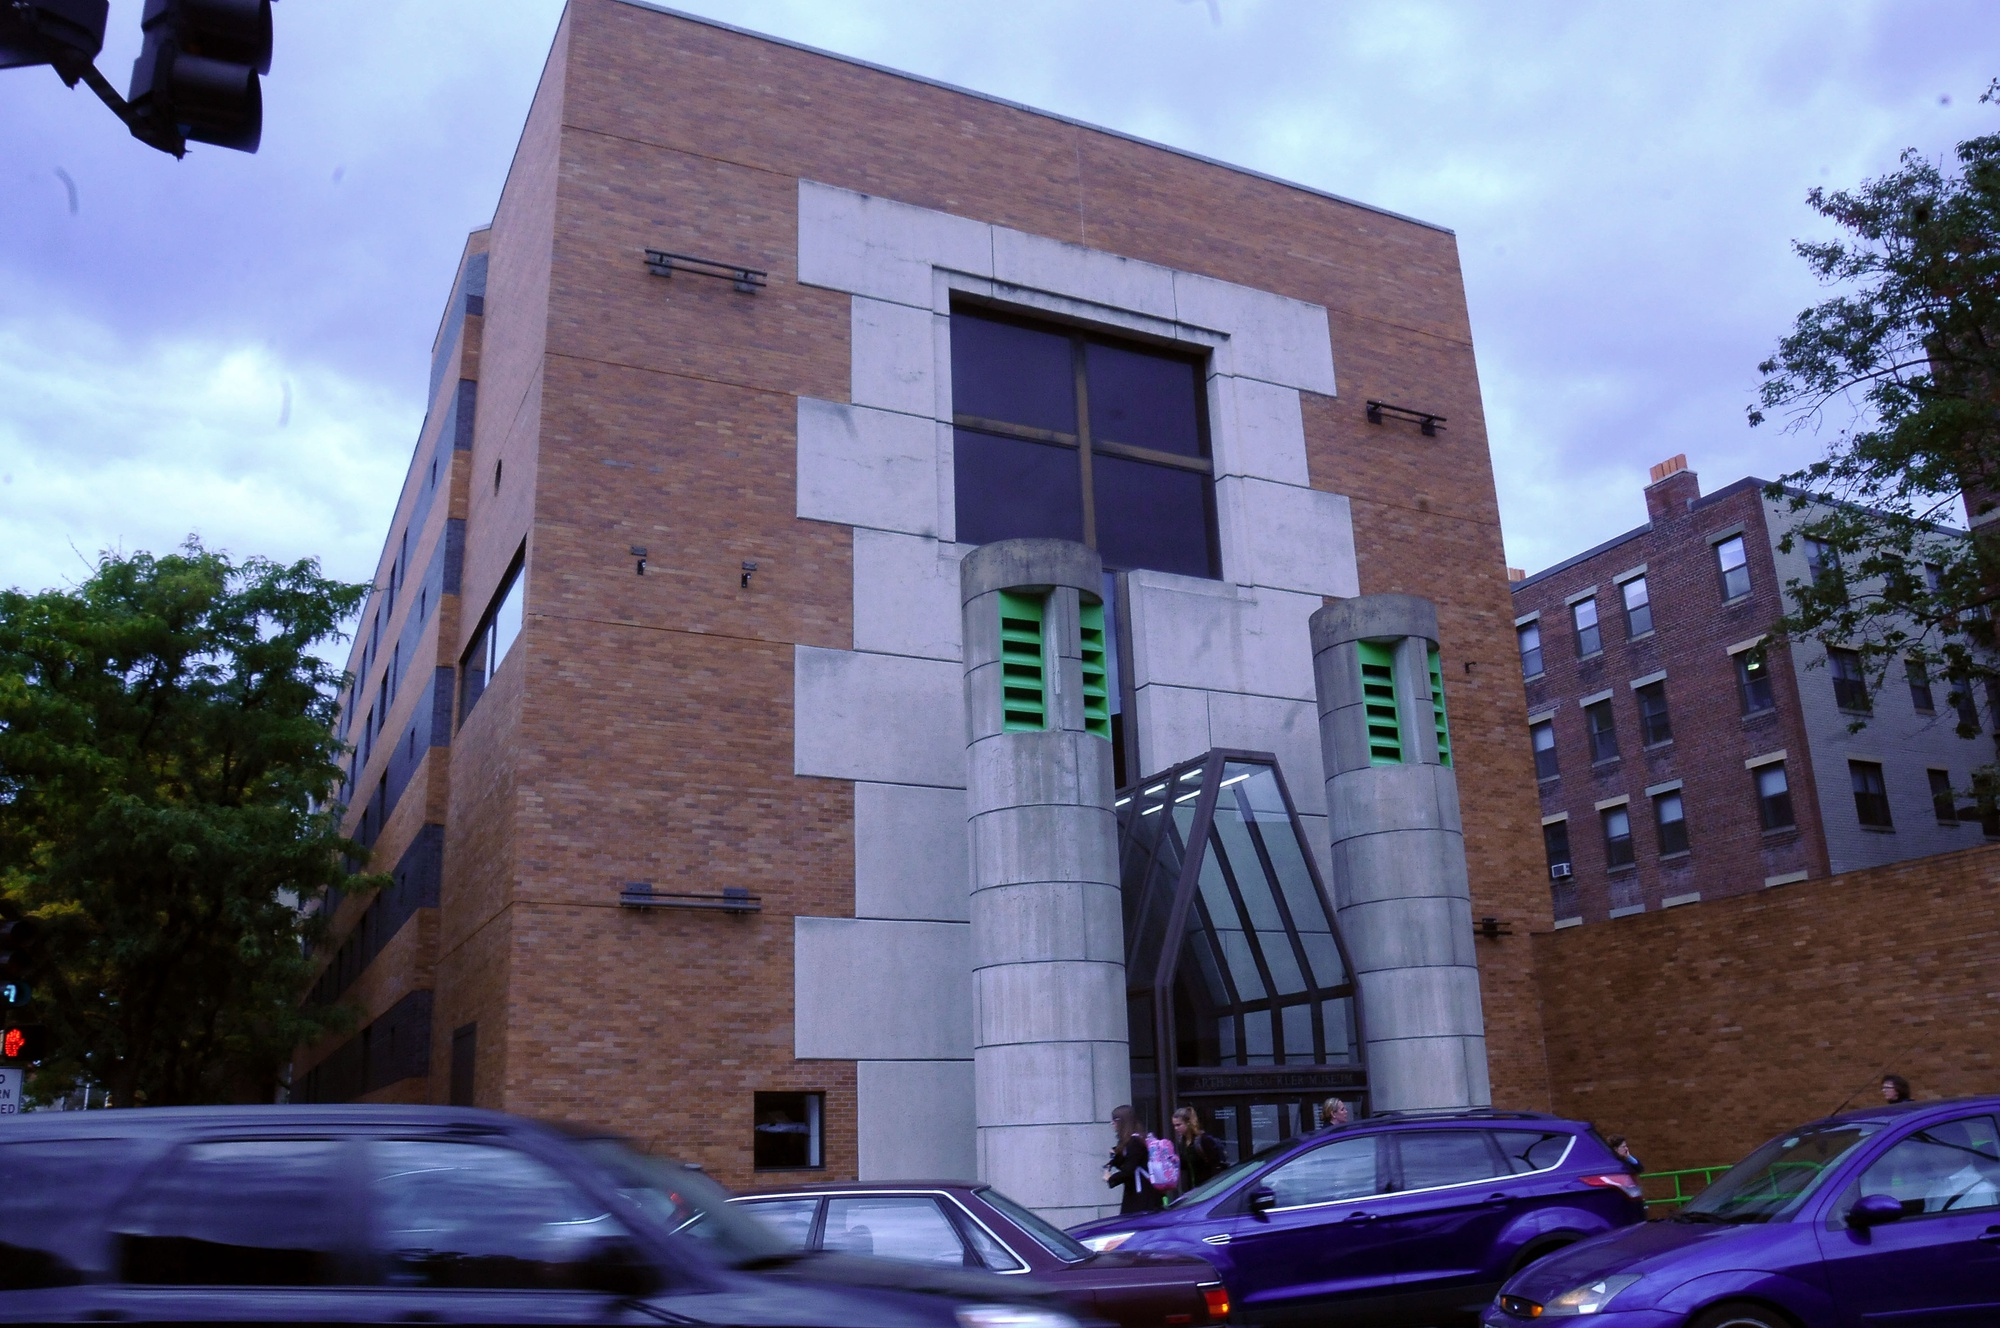 Cars drive past the busy geometric entrance of the Arthur M. Sackler Museum on Wednesday afternoon.